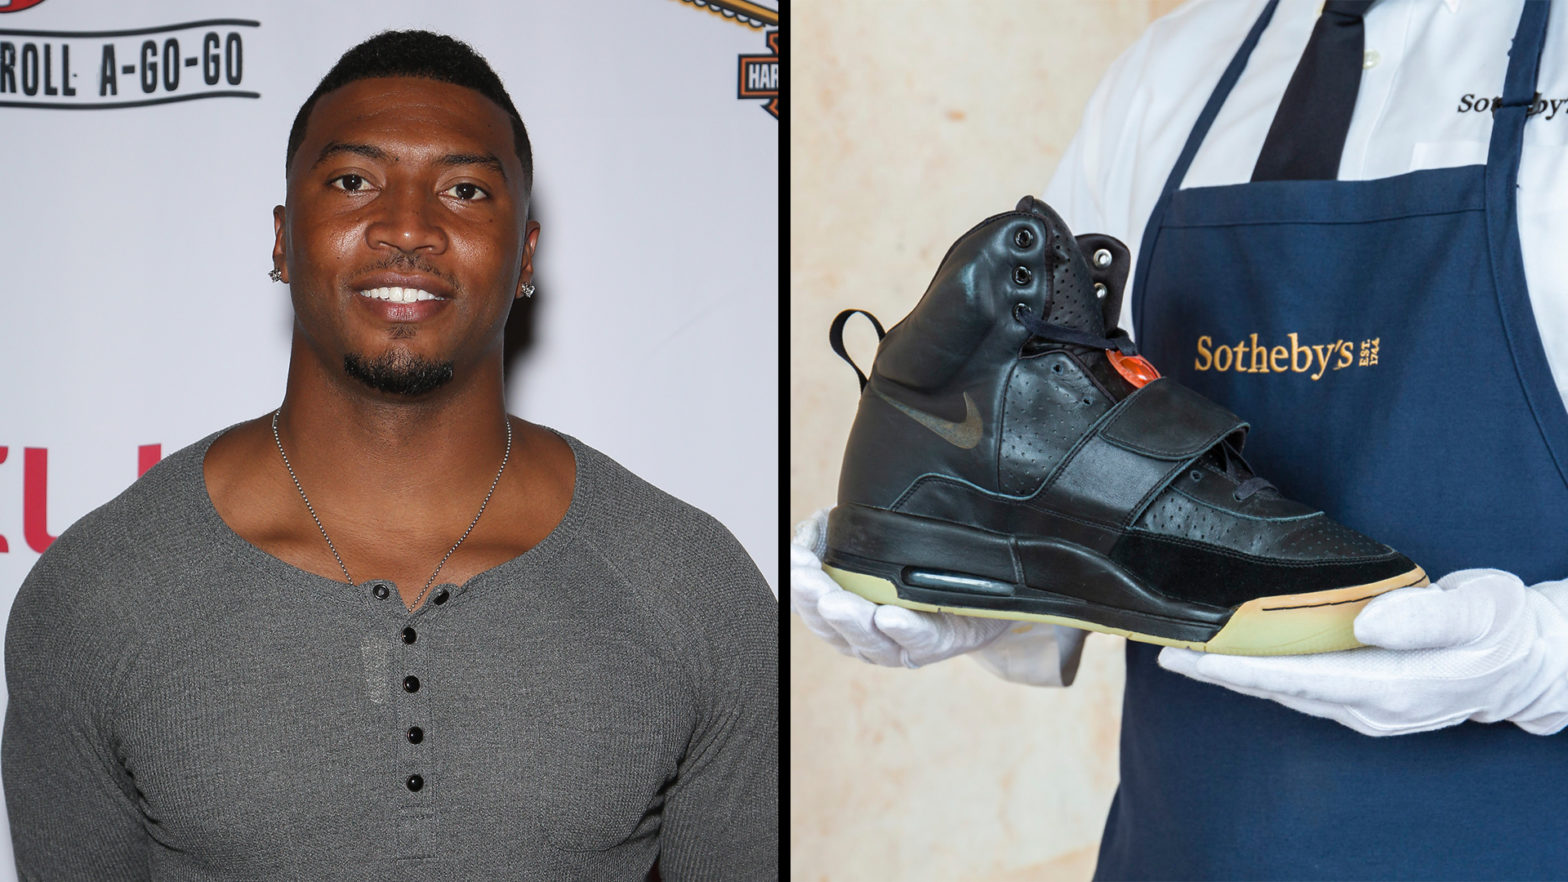 Athlete-Turned-Techpreneur Gerome Sapp's $1.8M Yeezy Prototype Sneaker Purchase Is Giving Back To The Culture